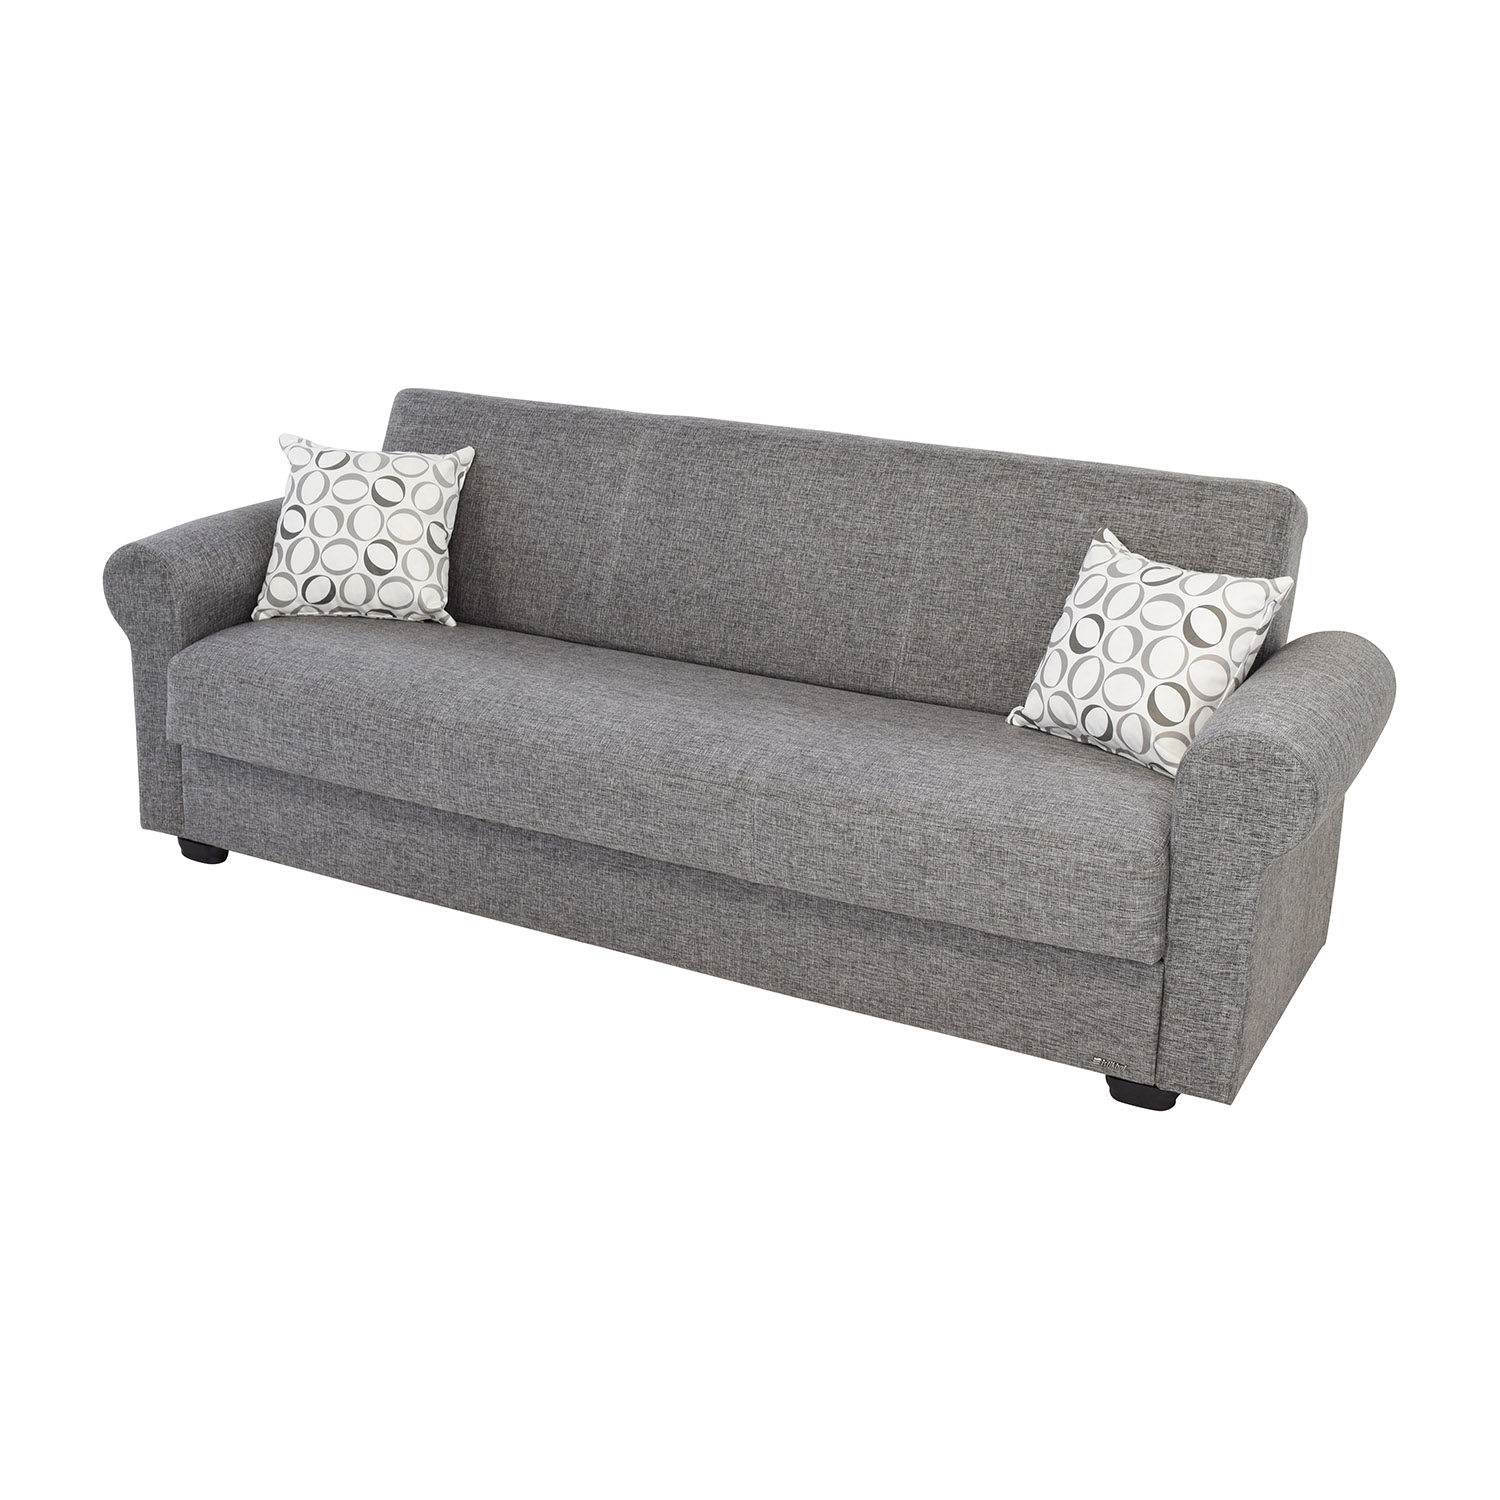 Istikbal Sleeper Couch With Storage